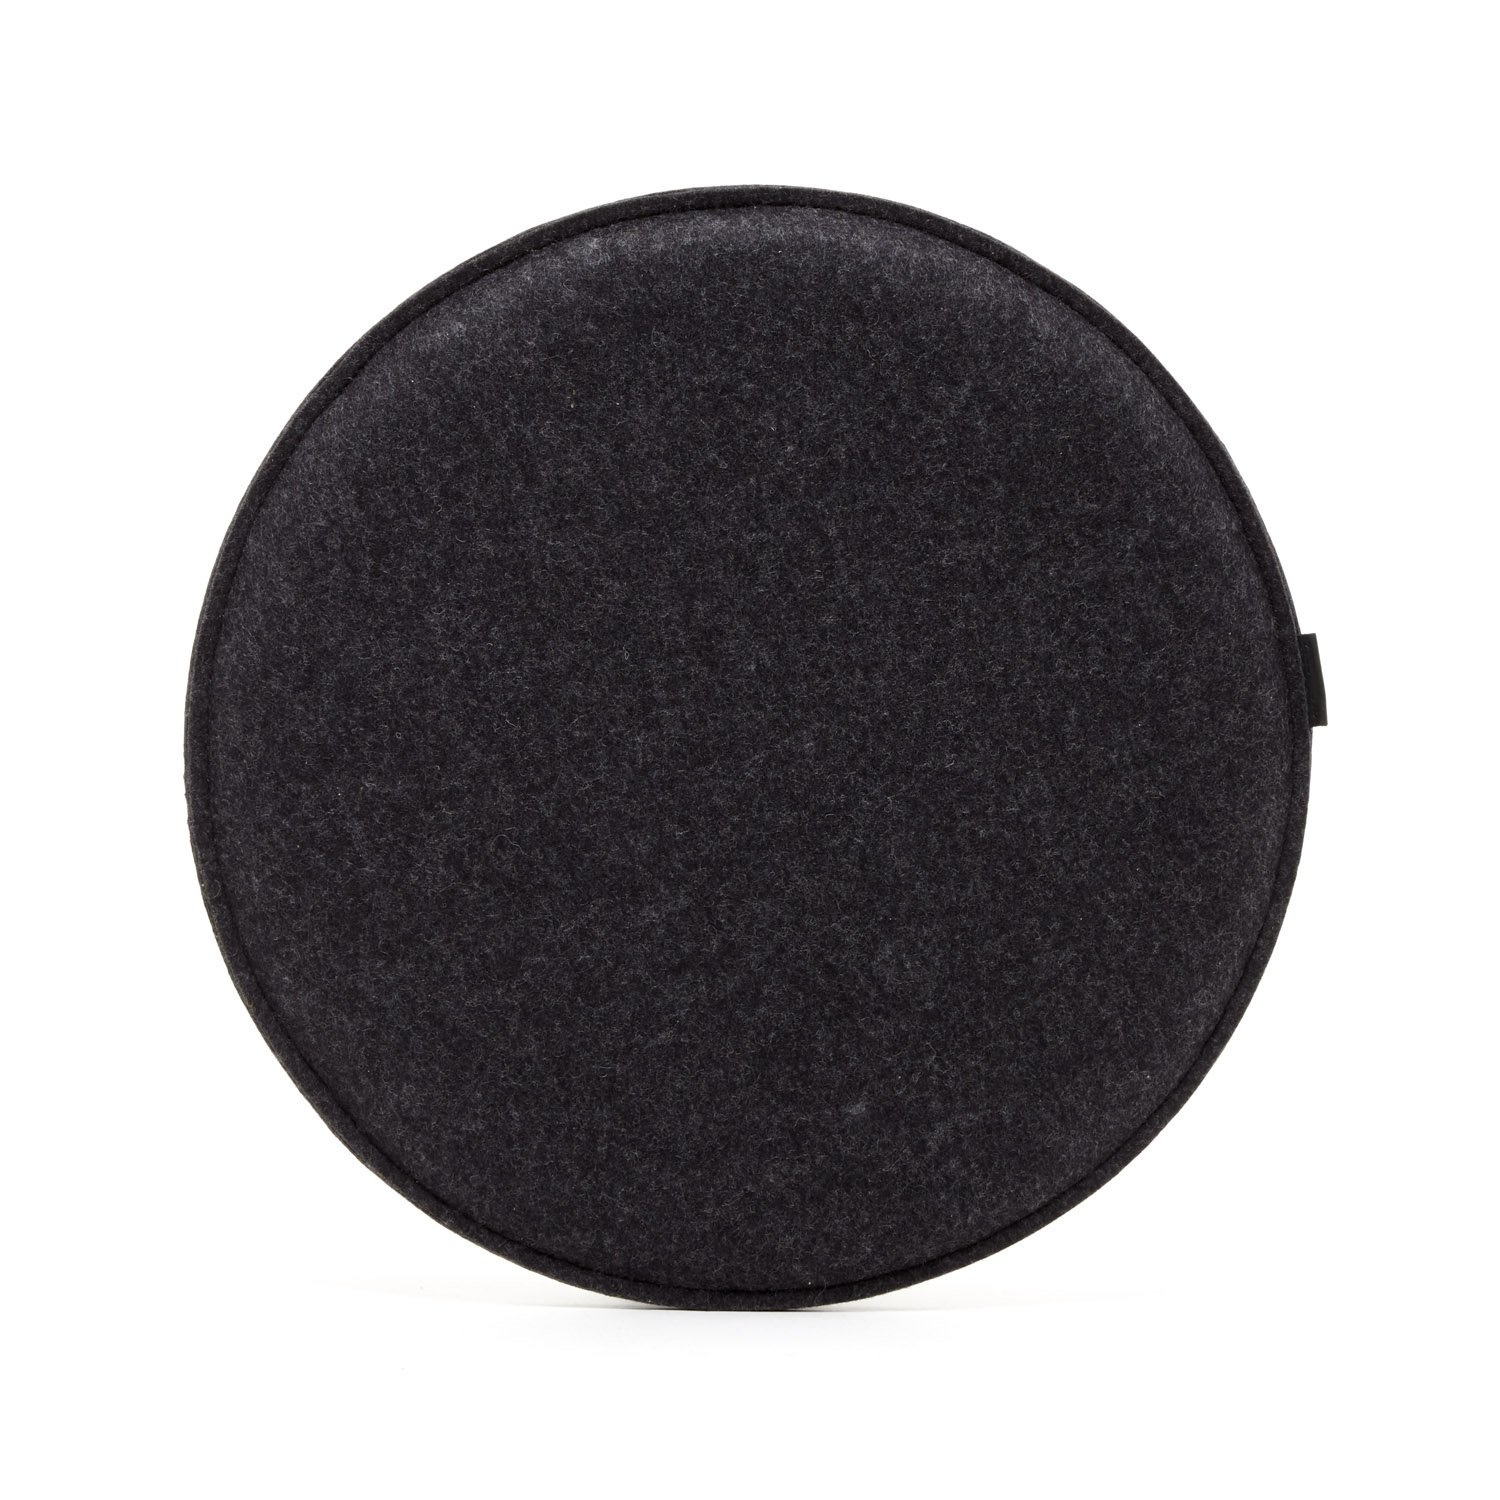 Seat Pad - Round -Charcoal-1